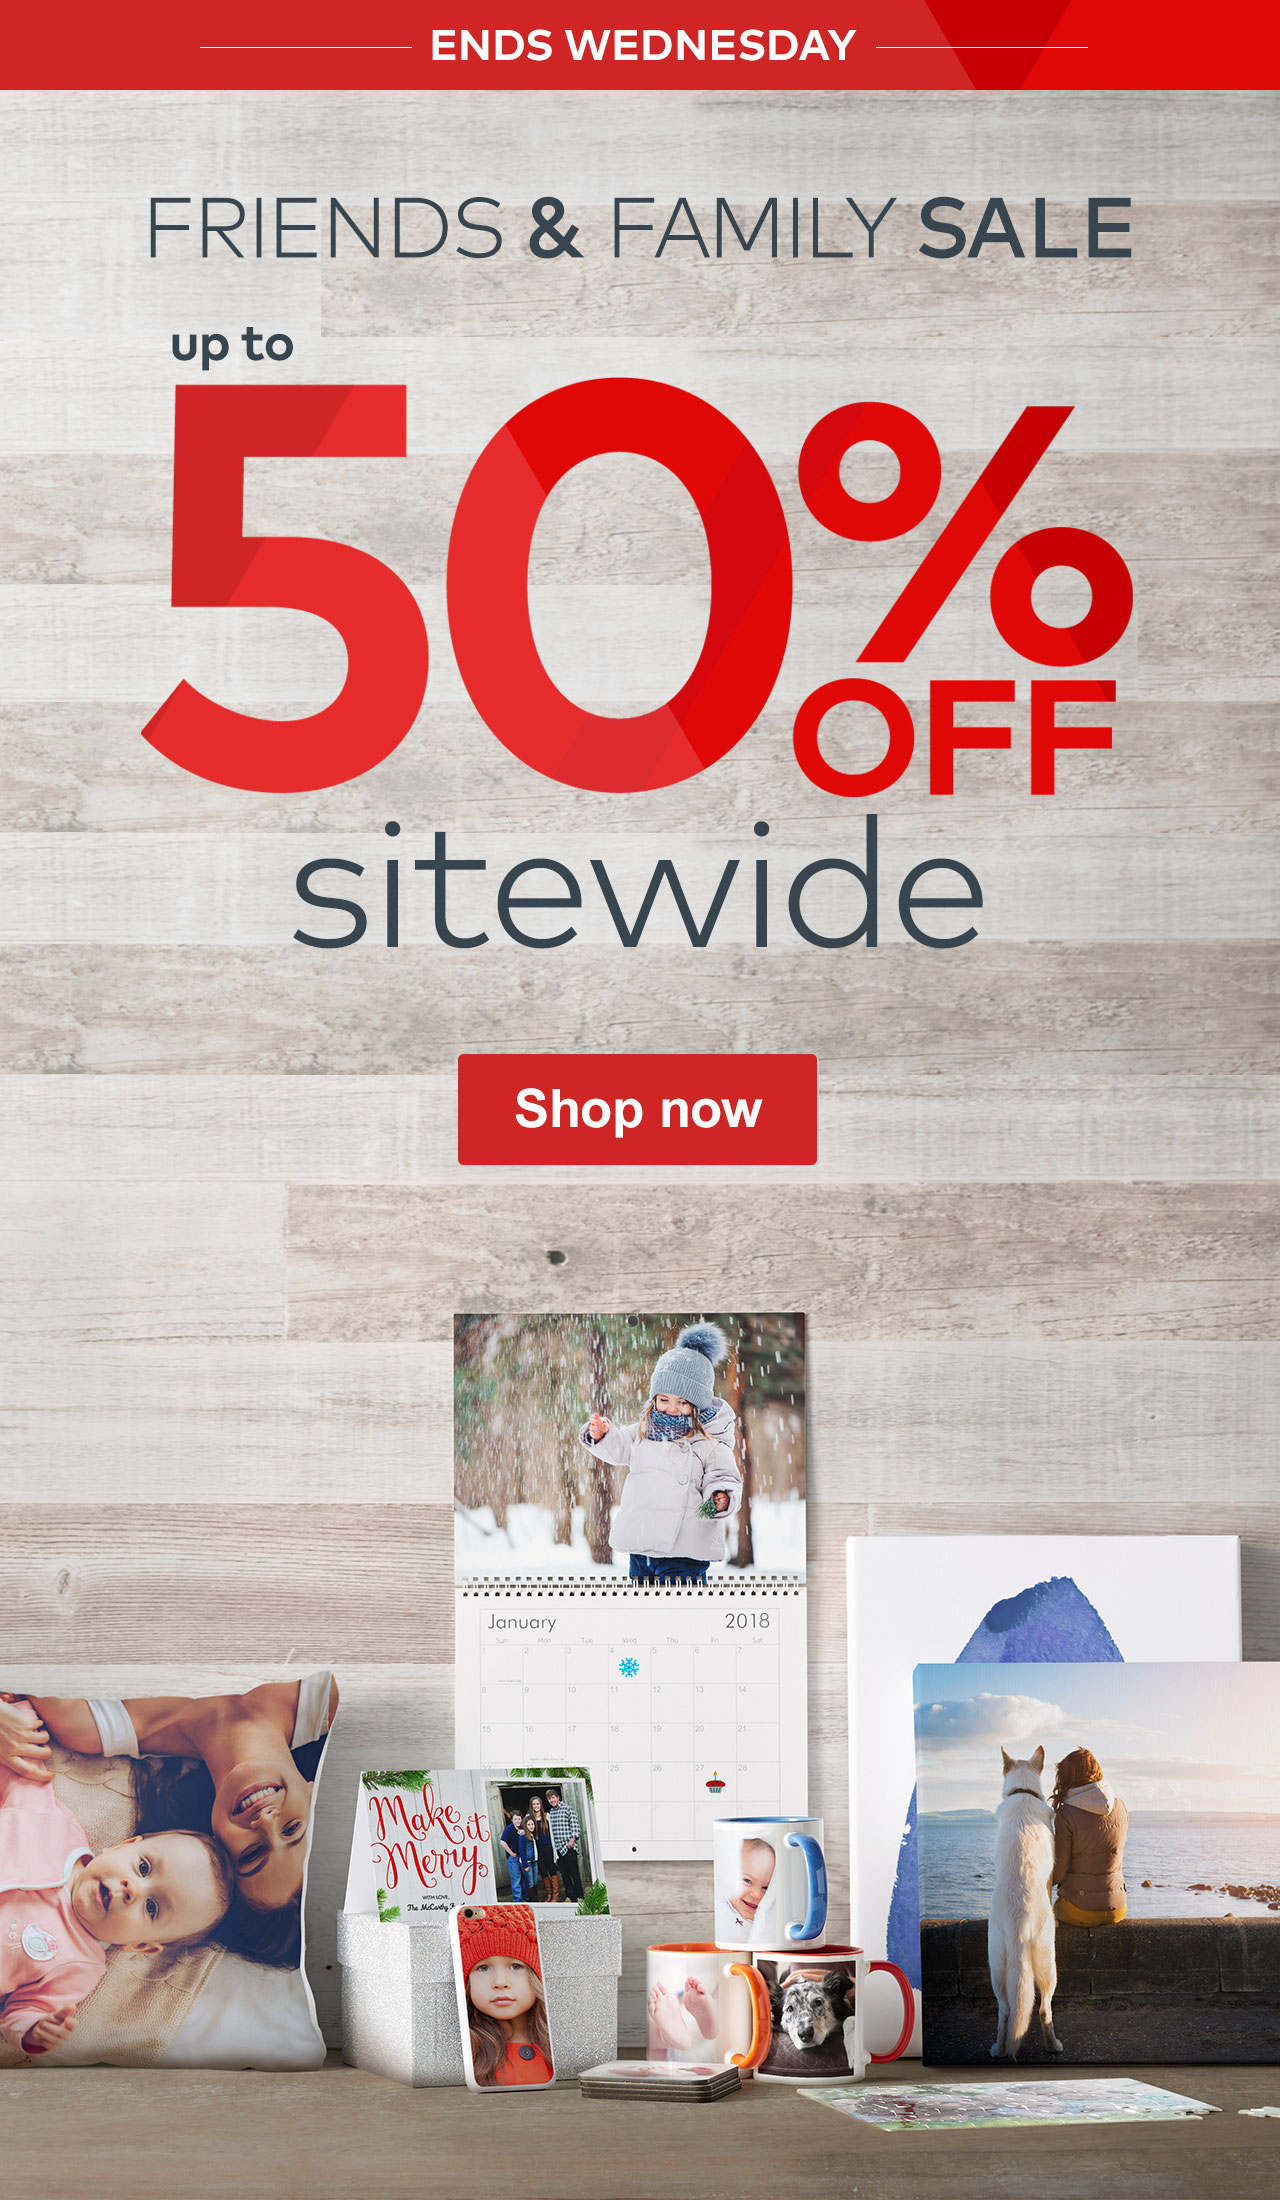 vistaprint friends family sale up to 50 off sitewide don